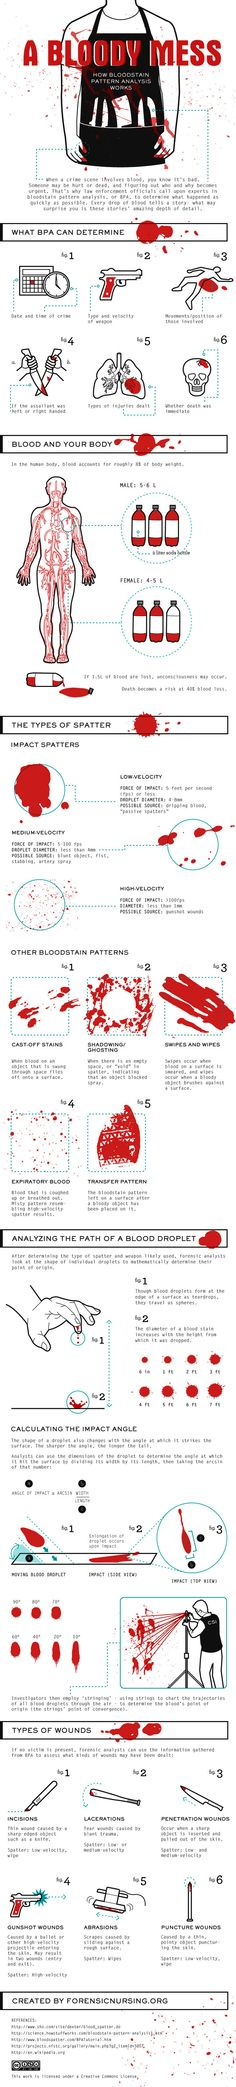 Detective Novelists: How Bloodstain Pattern Analysis Works (infographic)